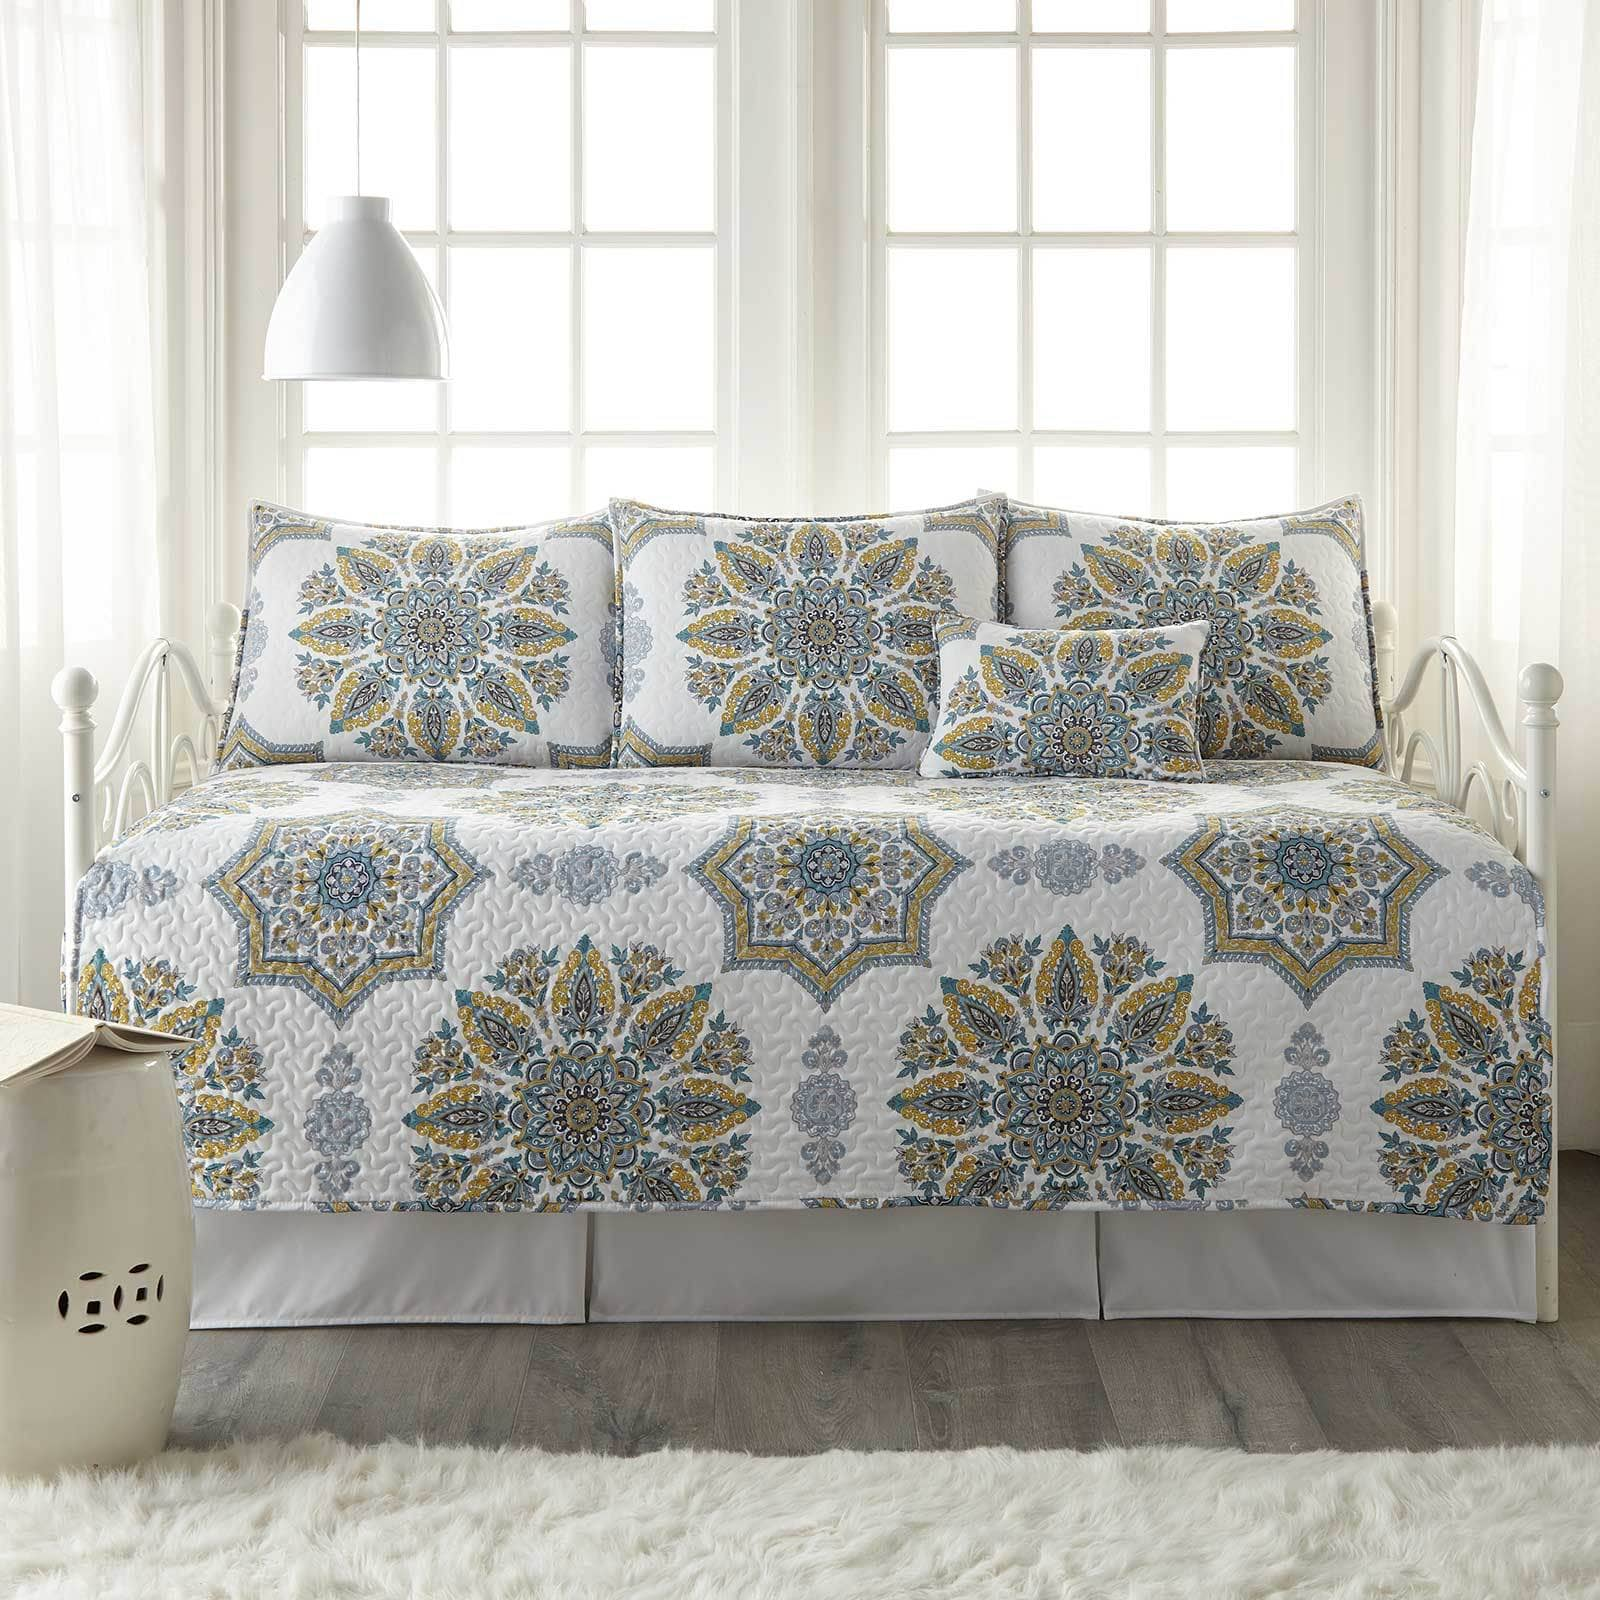 - Infinity Daybed Bedding 6-Piece Set Southshore Fine Linens